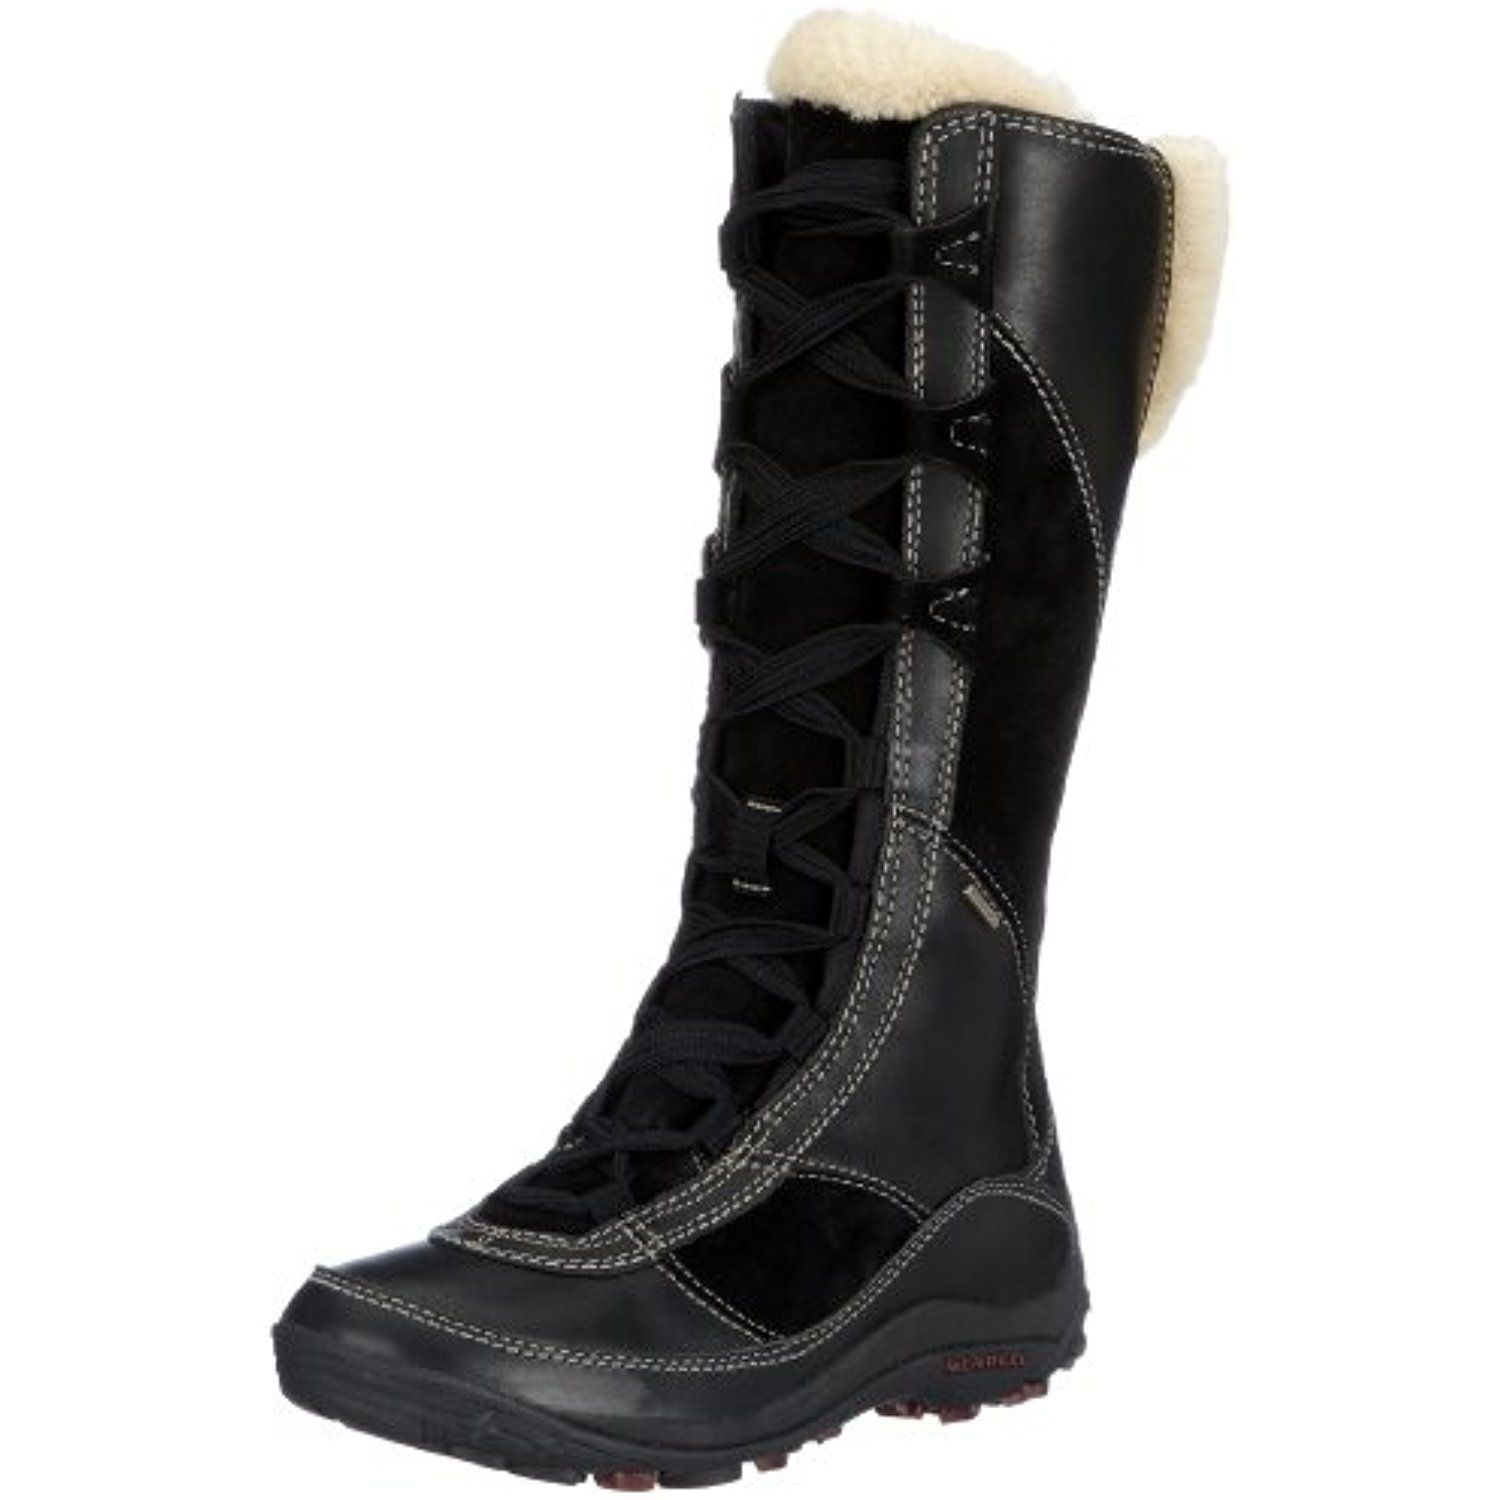 1495fd415a4 Women s Prevoz Lace-Up Boot     You can find more details by ...